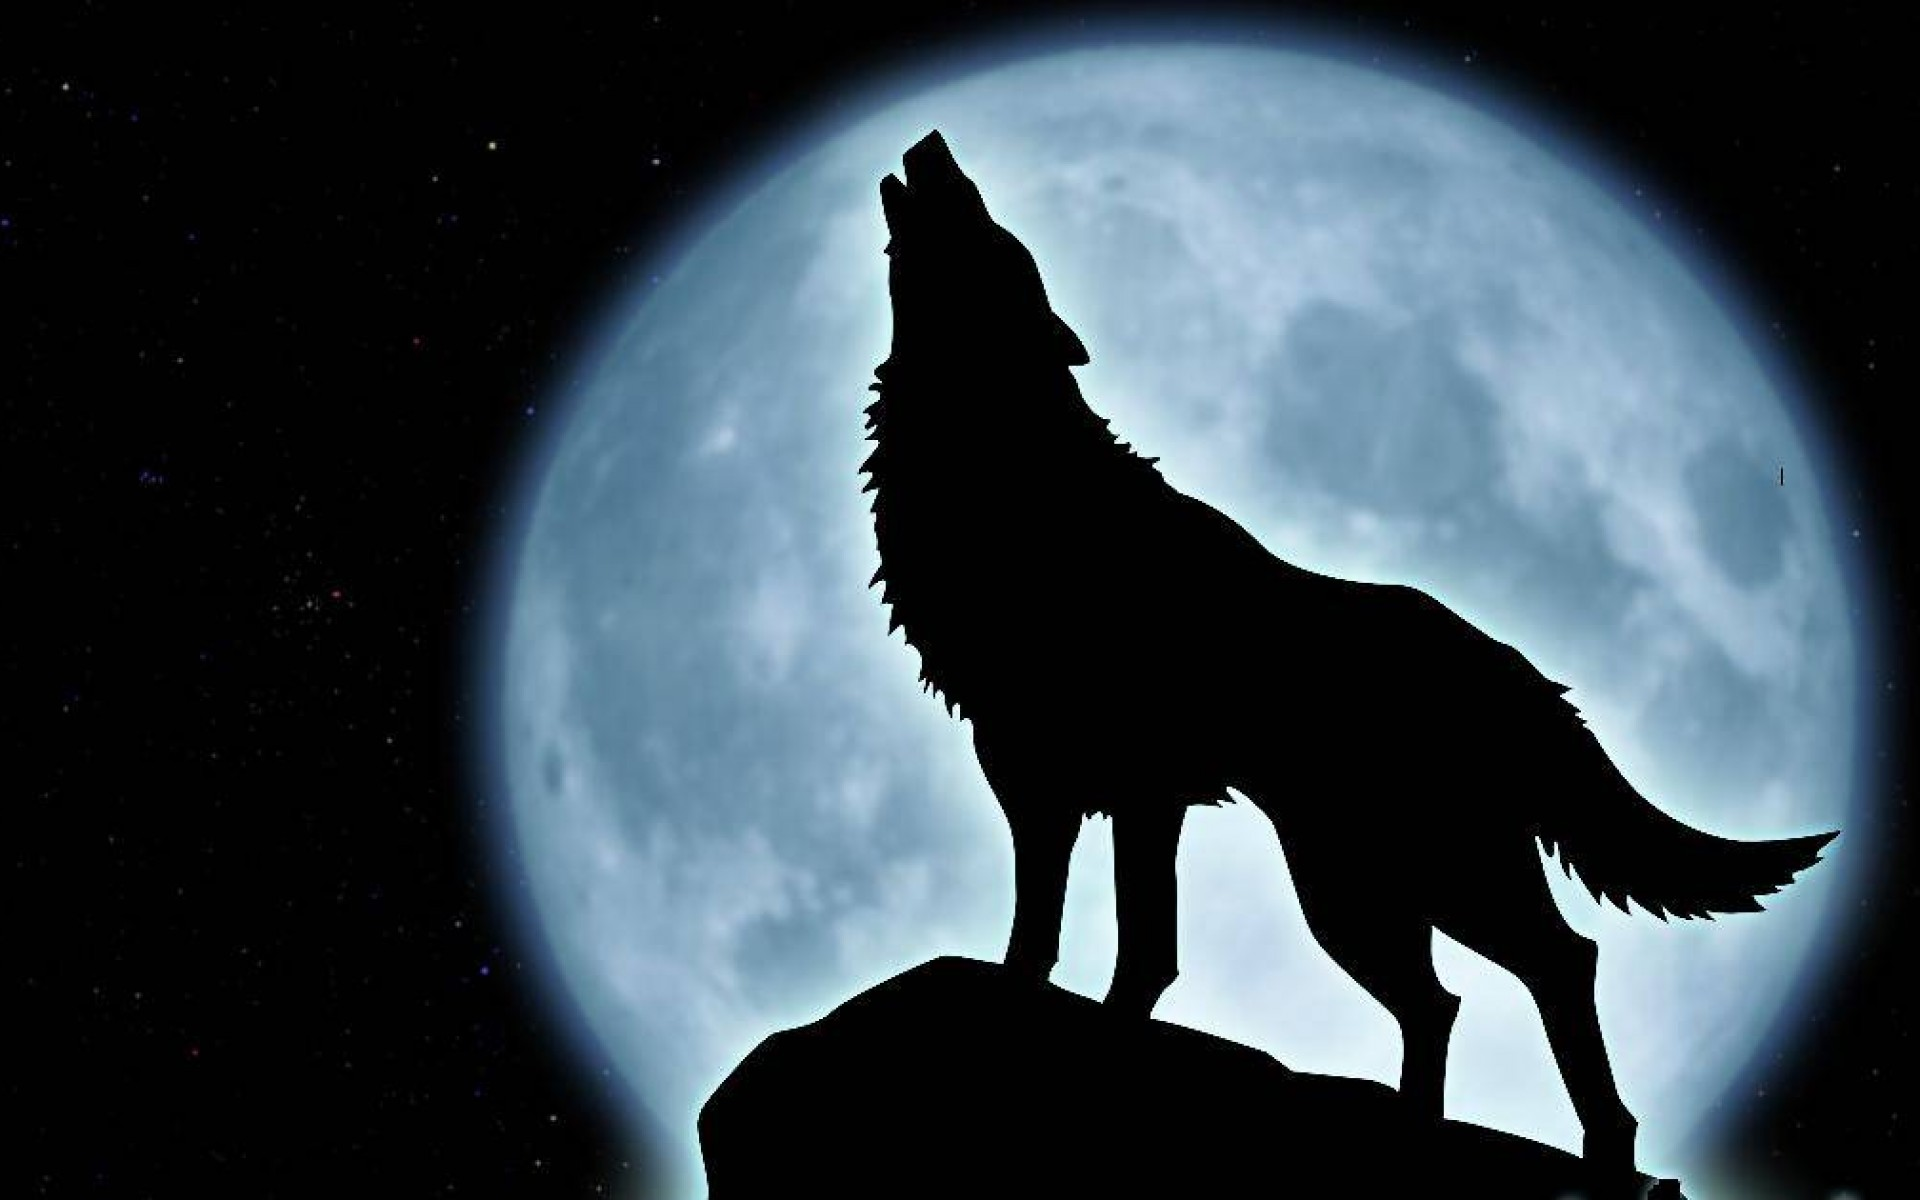 Howling Wolf Wallpaper 10927 Hd Wallpapers in Animals   Imagescicom 1920x1200